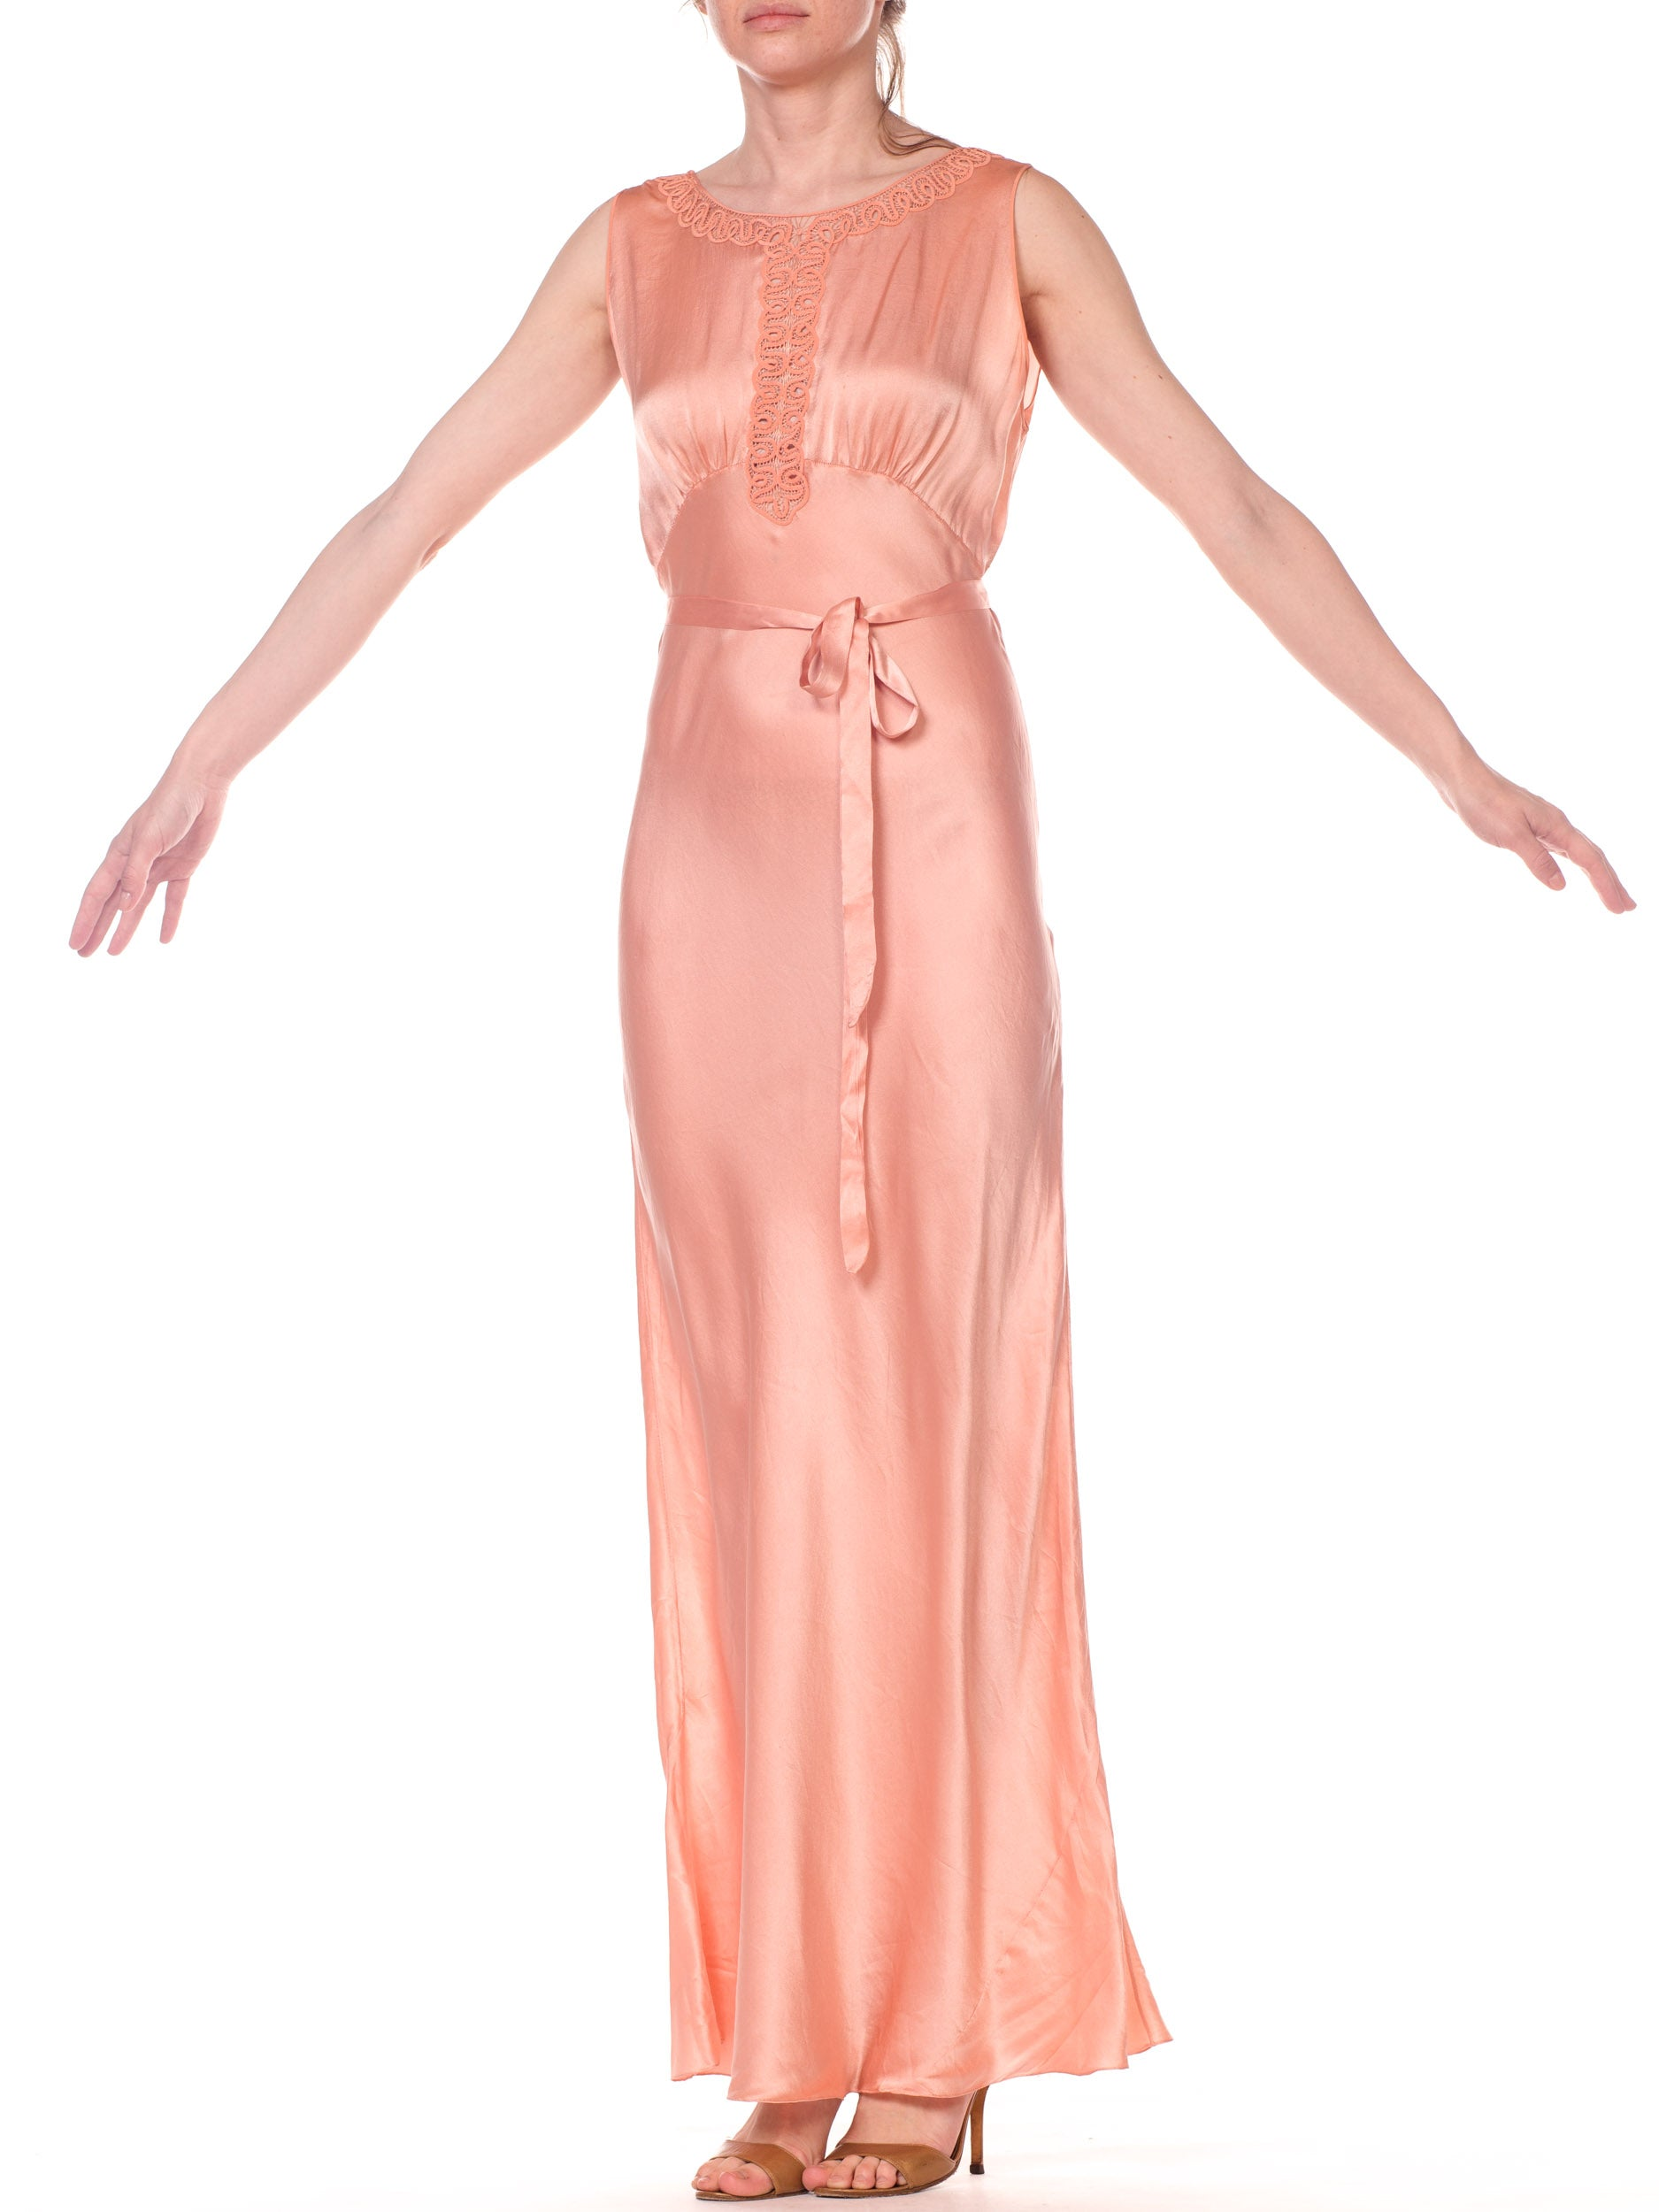 1930S Blush Pink Haute Couture Silk Charmeuse Bias Cut Negligee With Handmade Lace Neckline